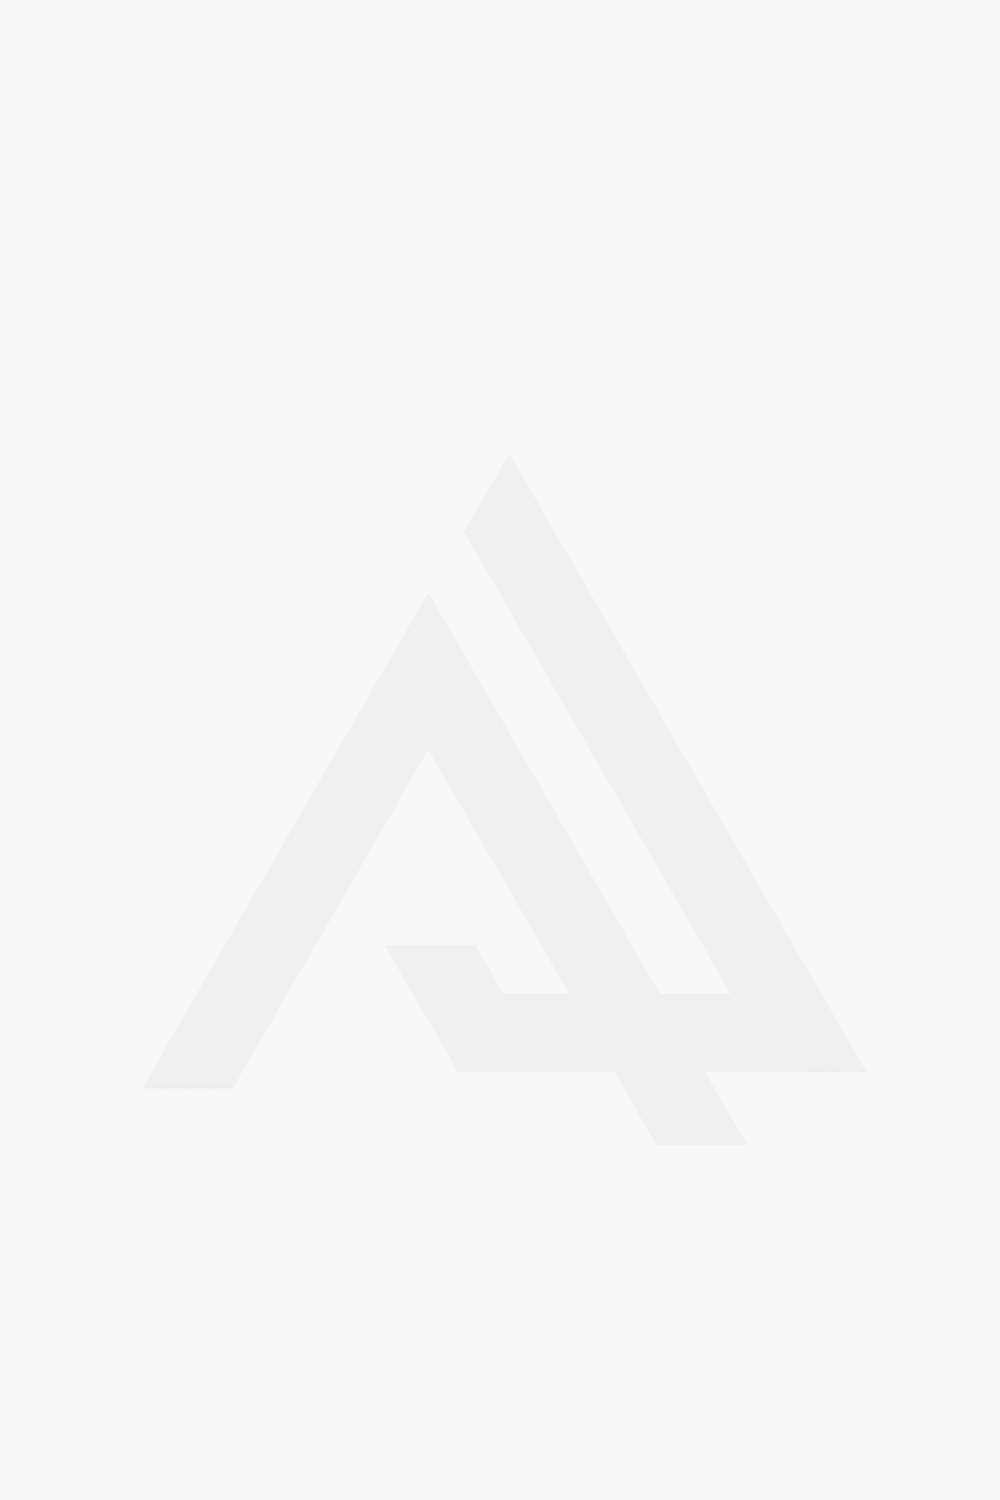 Textured Stripe Hand Towel, Set of 4, 550 GSM